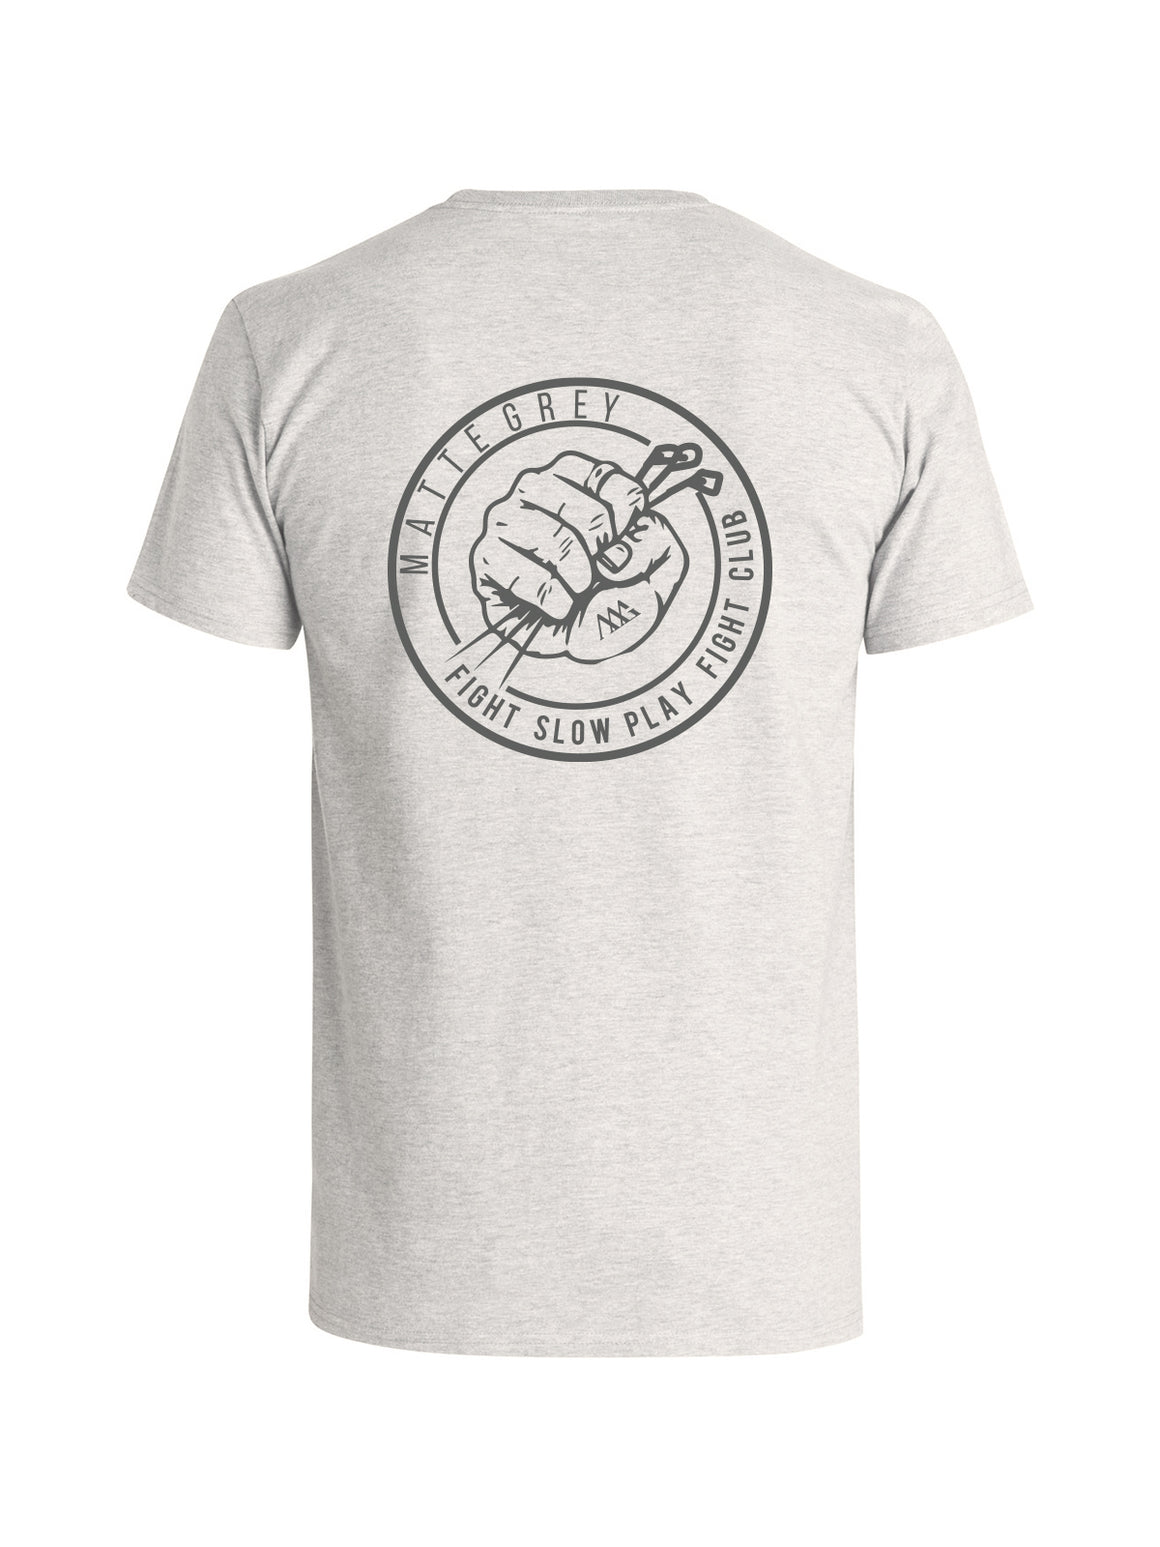 Slow Play Tee Shirt - Feather Grey (Brand Grey)